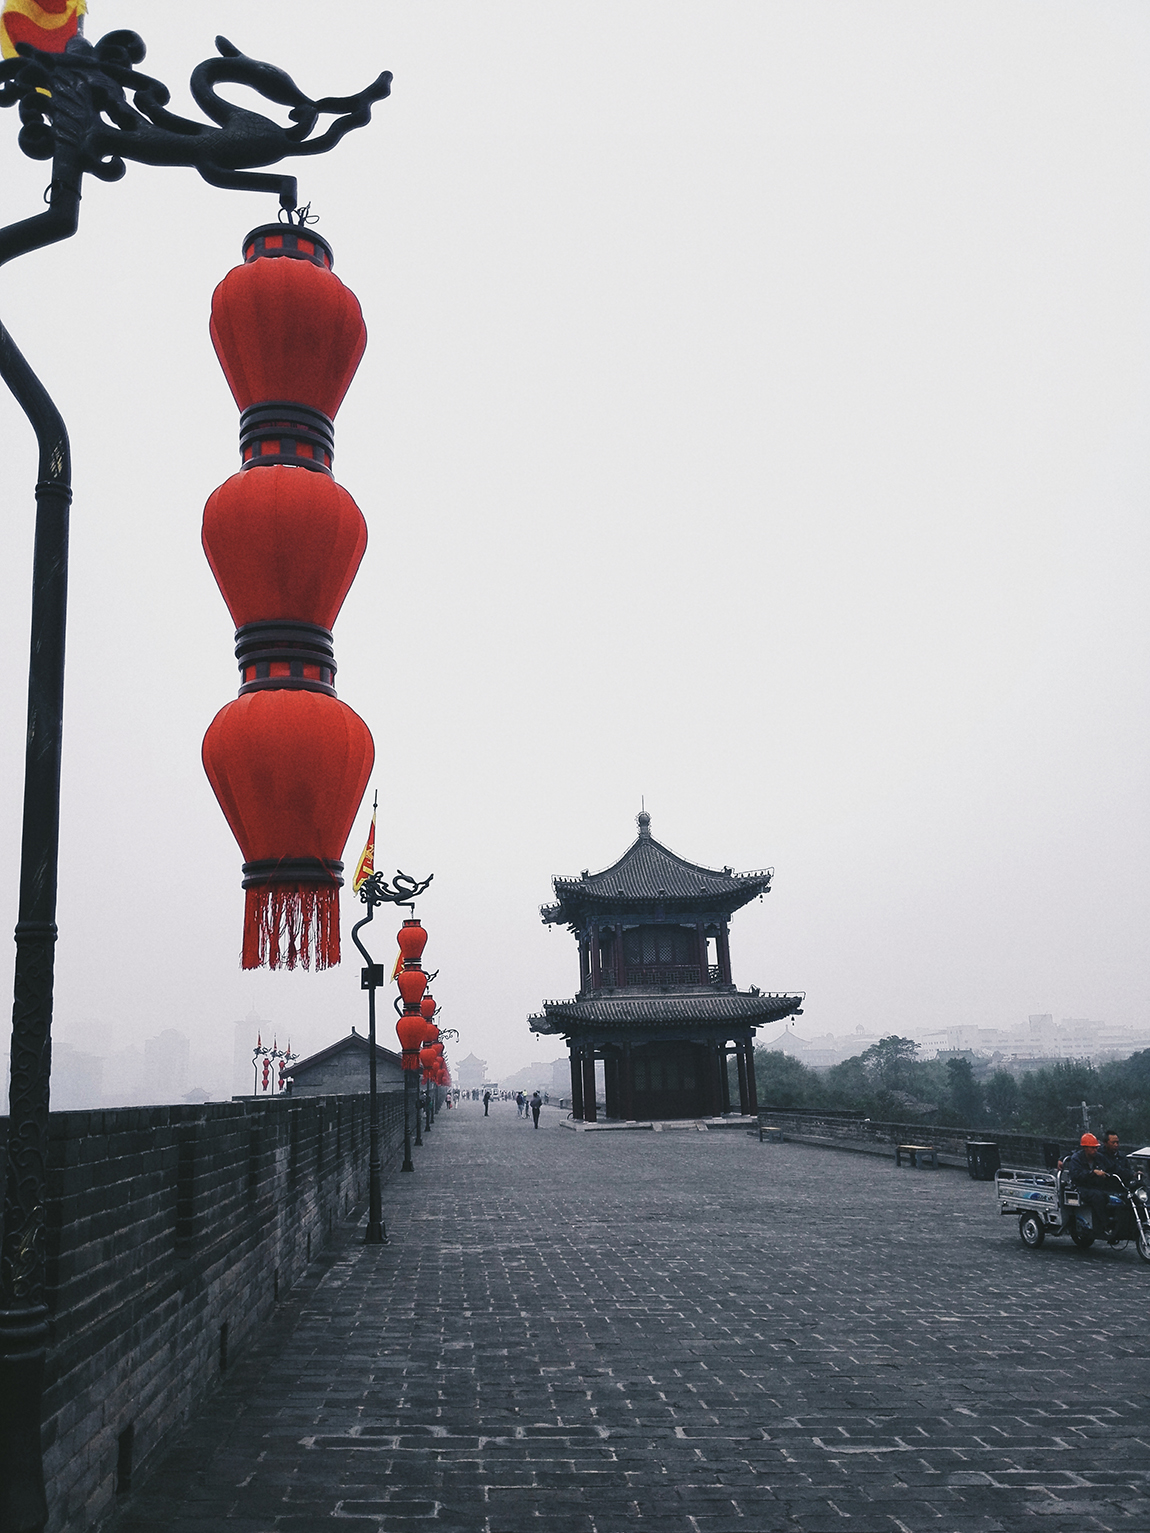 Xi'an City Wall 西安城墙